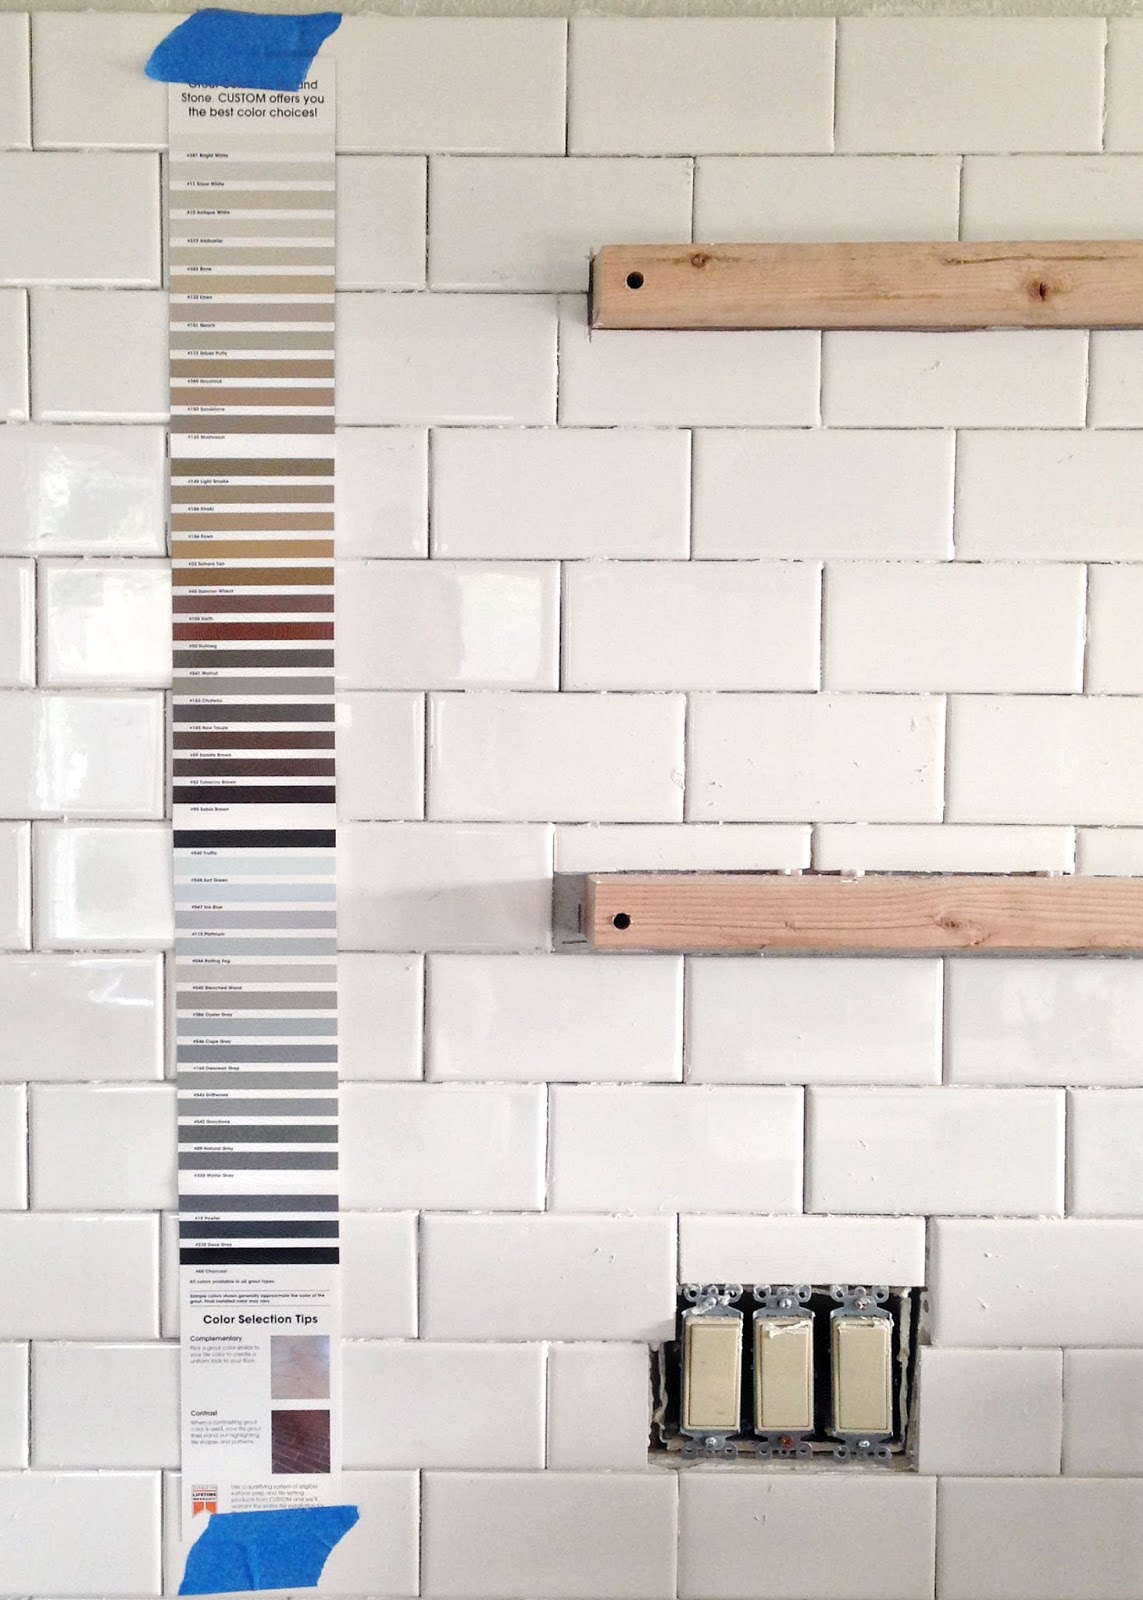 Subway tile installation tips on grouting with fusion pro finally dailygadgetfo Gallery